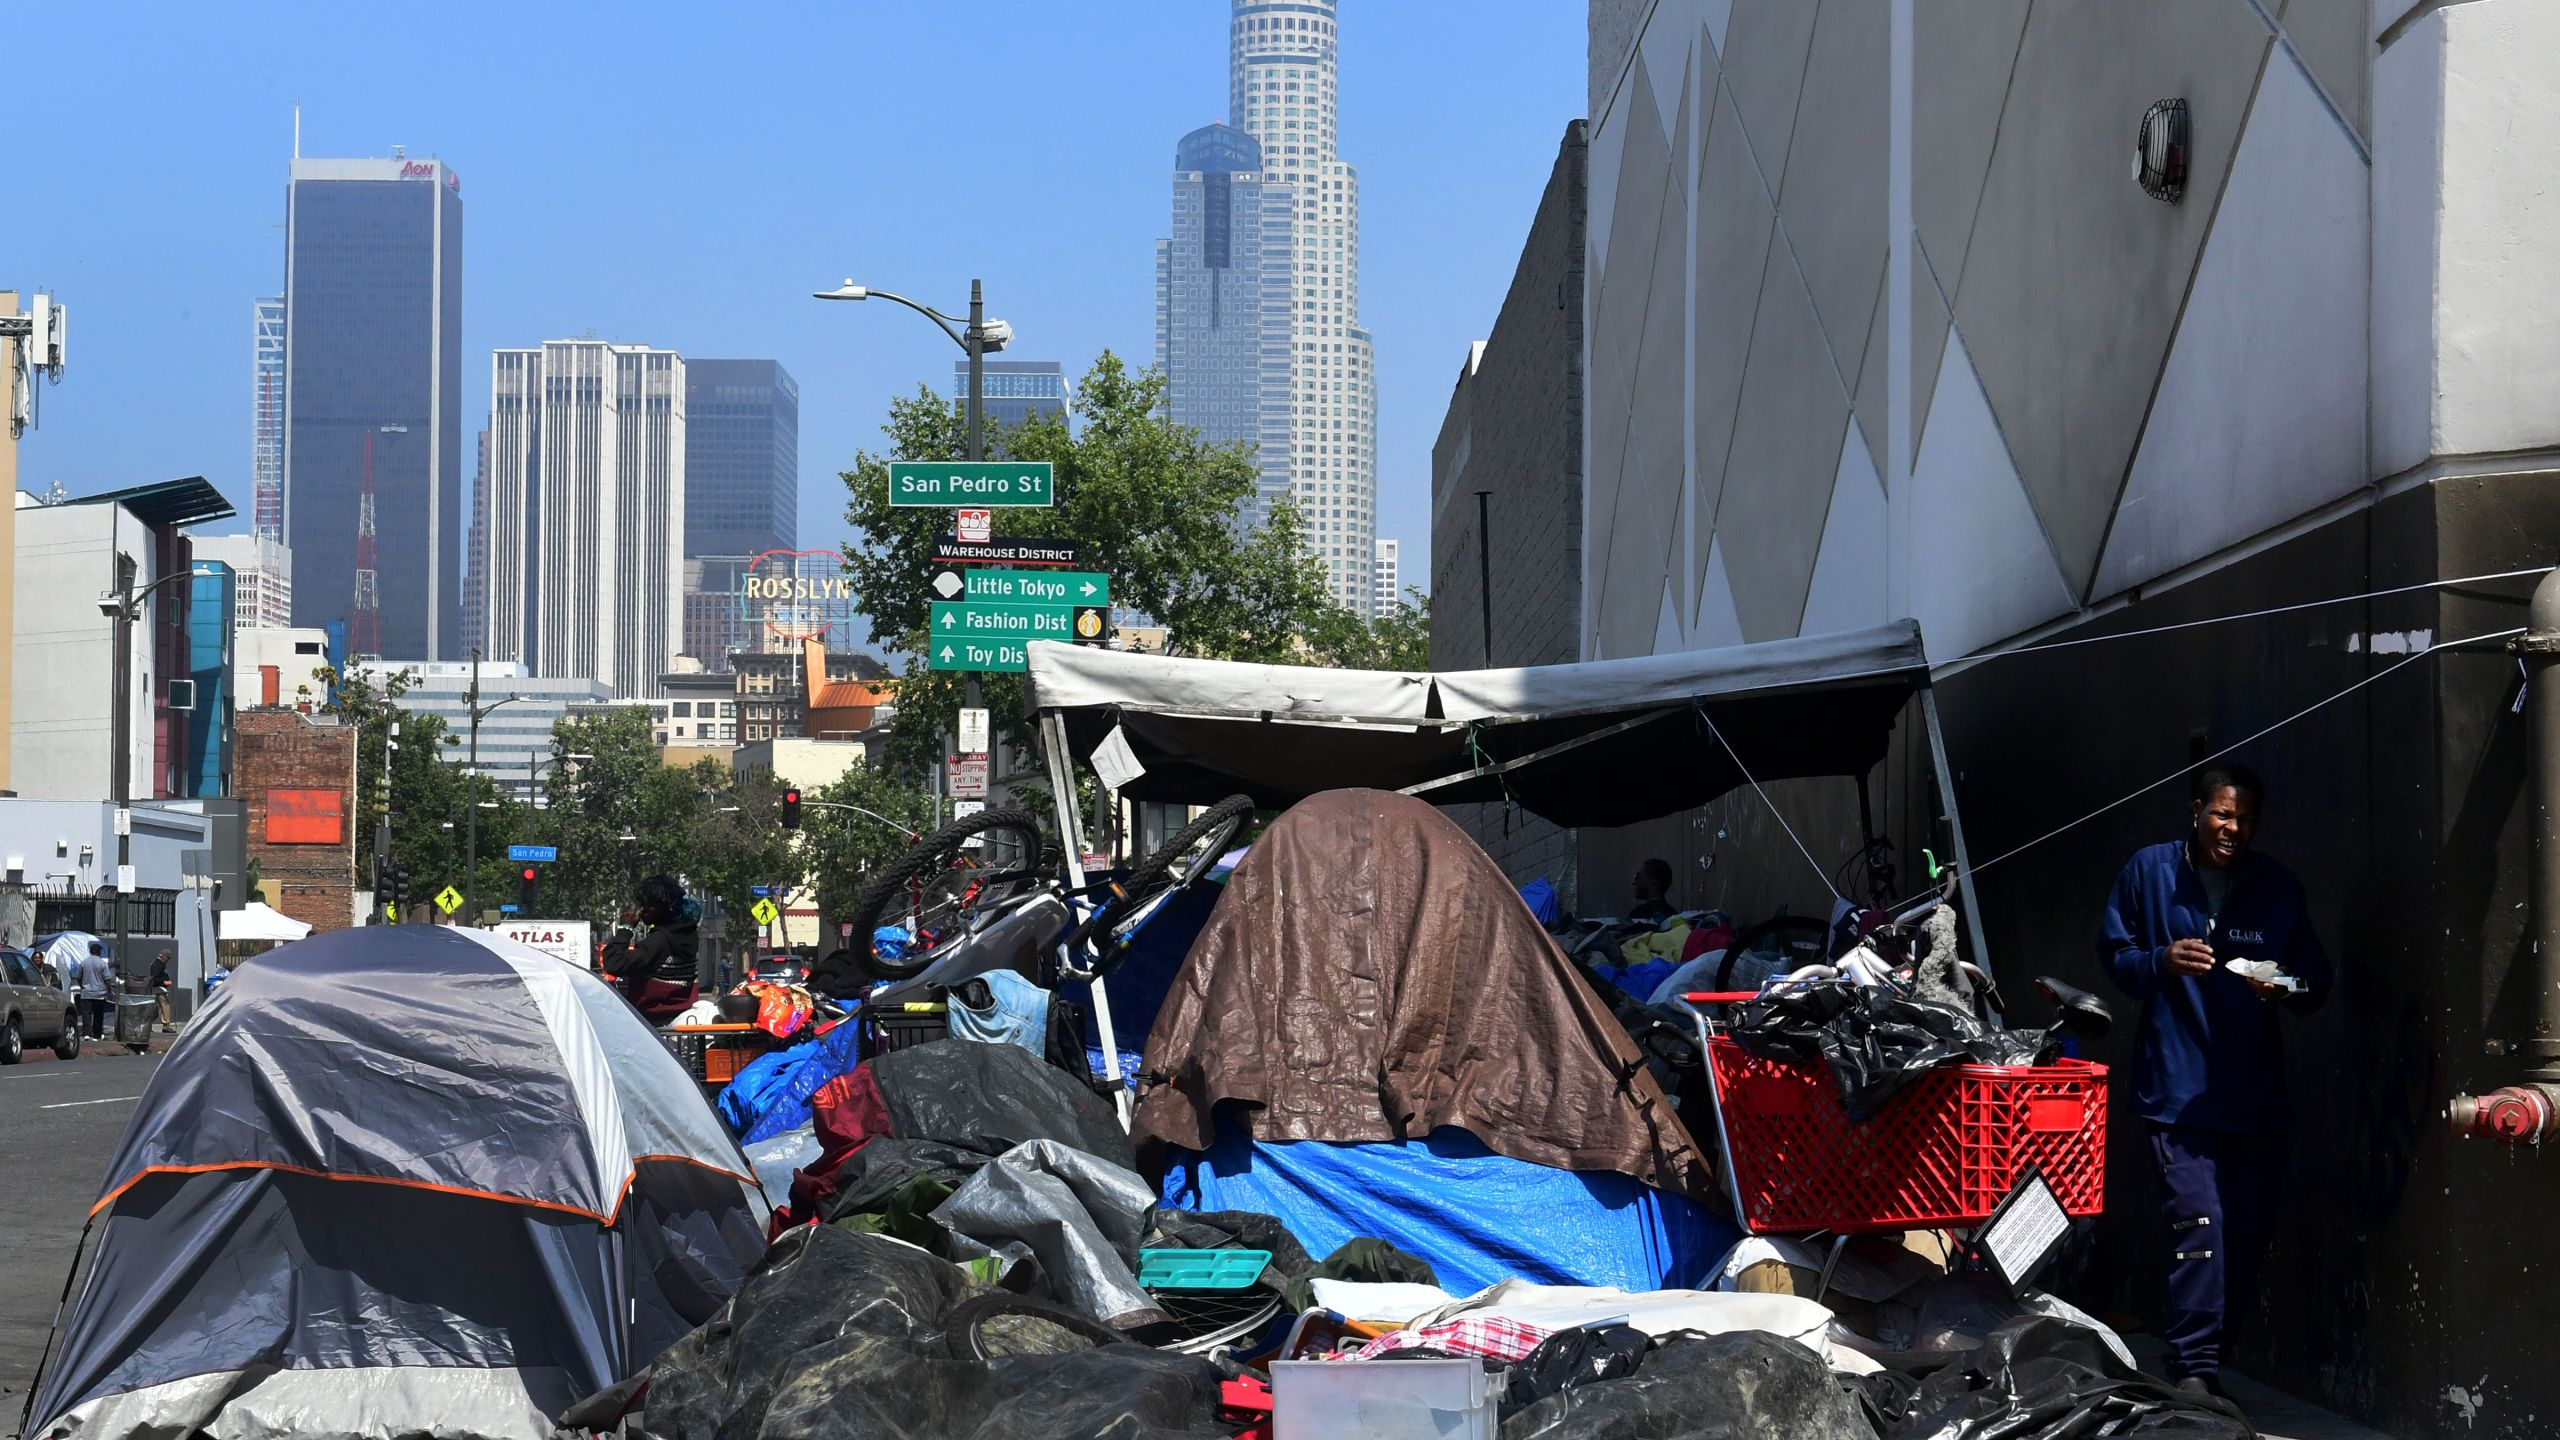 Belongings of the homeless crowd a downtown Los Angeles sidewalk in Skid Row on May 30, 2019. (Credit: Frederic J. Brown / AFP / Getty Images)